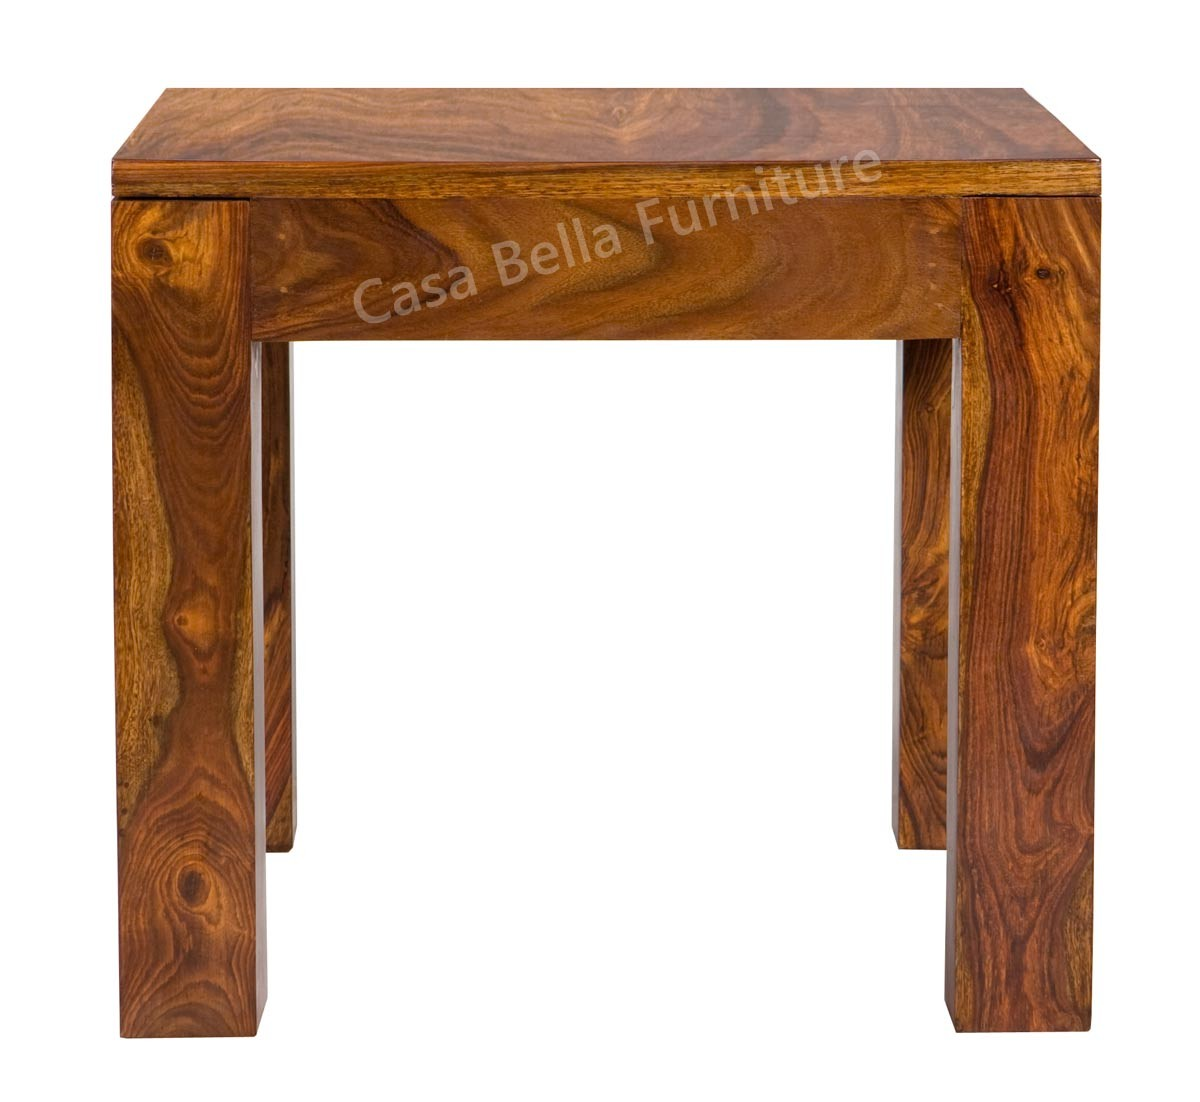 Cuba sheesham lamp table casa bella furniture uk cuba sheesham lamp table 1 aloadofball Choice Image